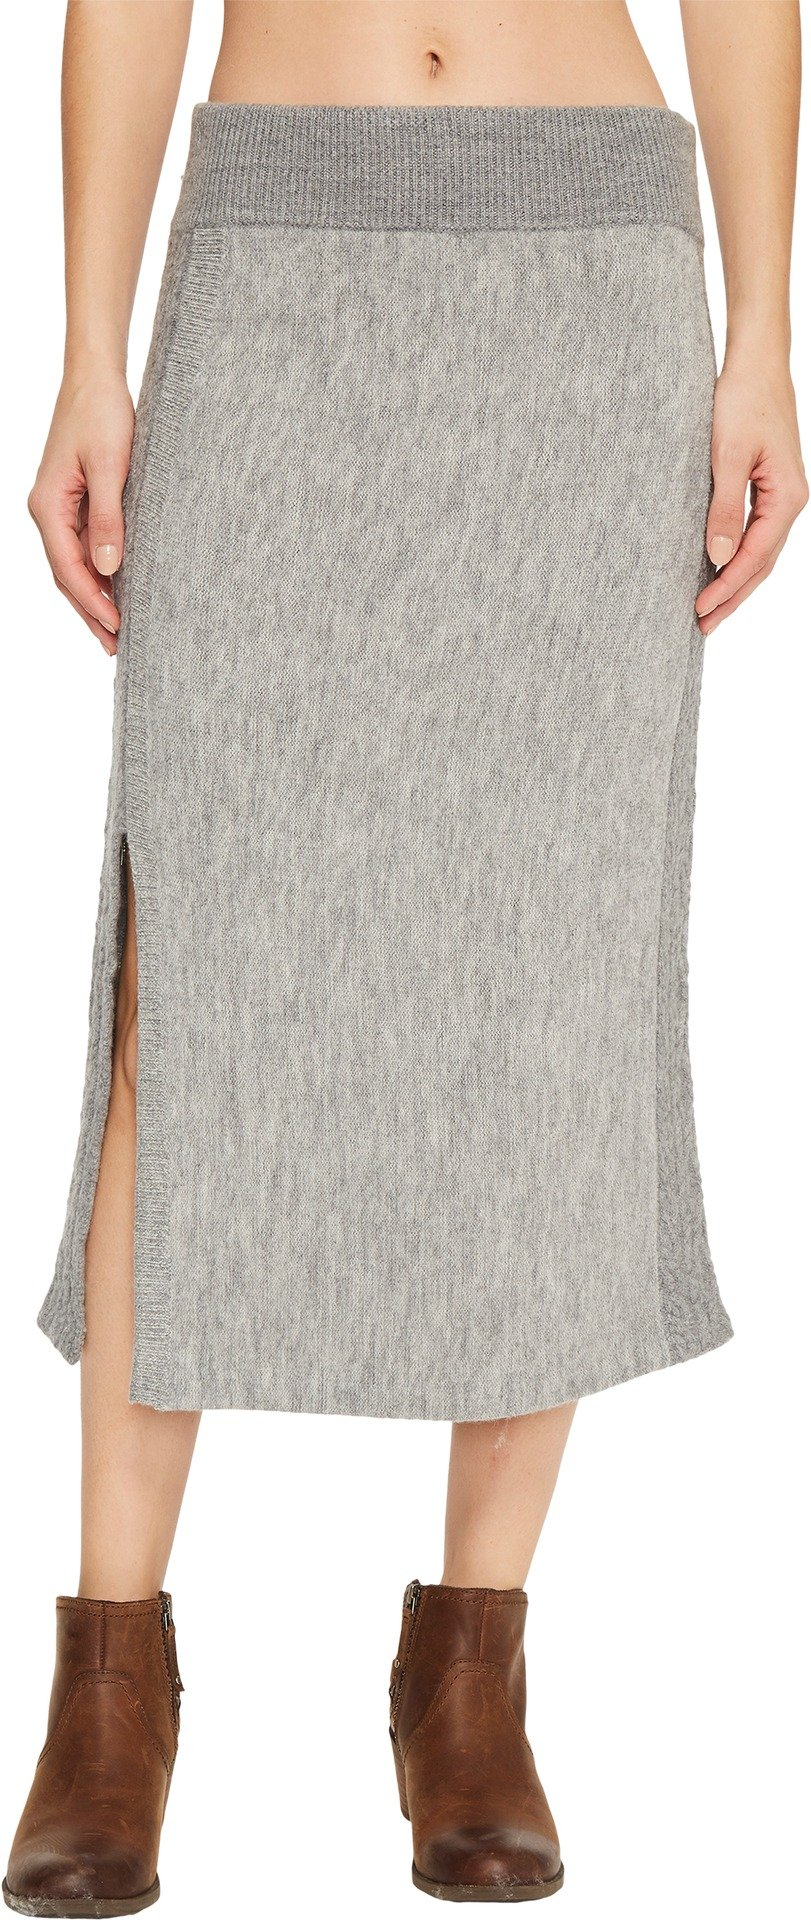 Toad&Co Women's Kilda Sweater Skirt Heather Grey X-Small